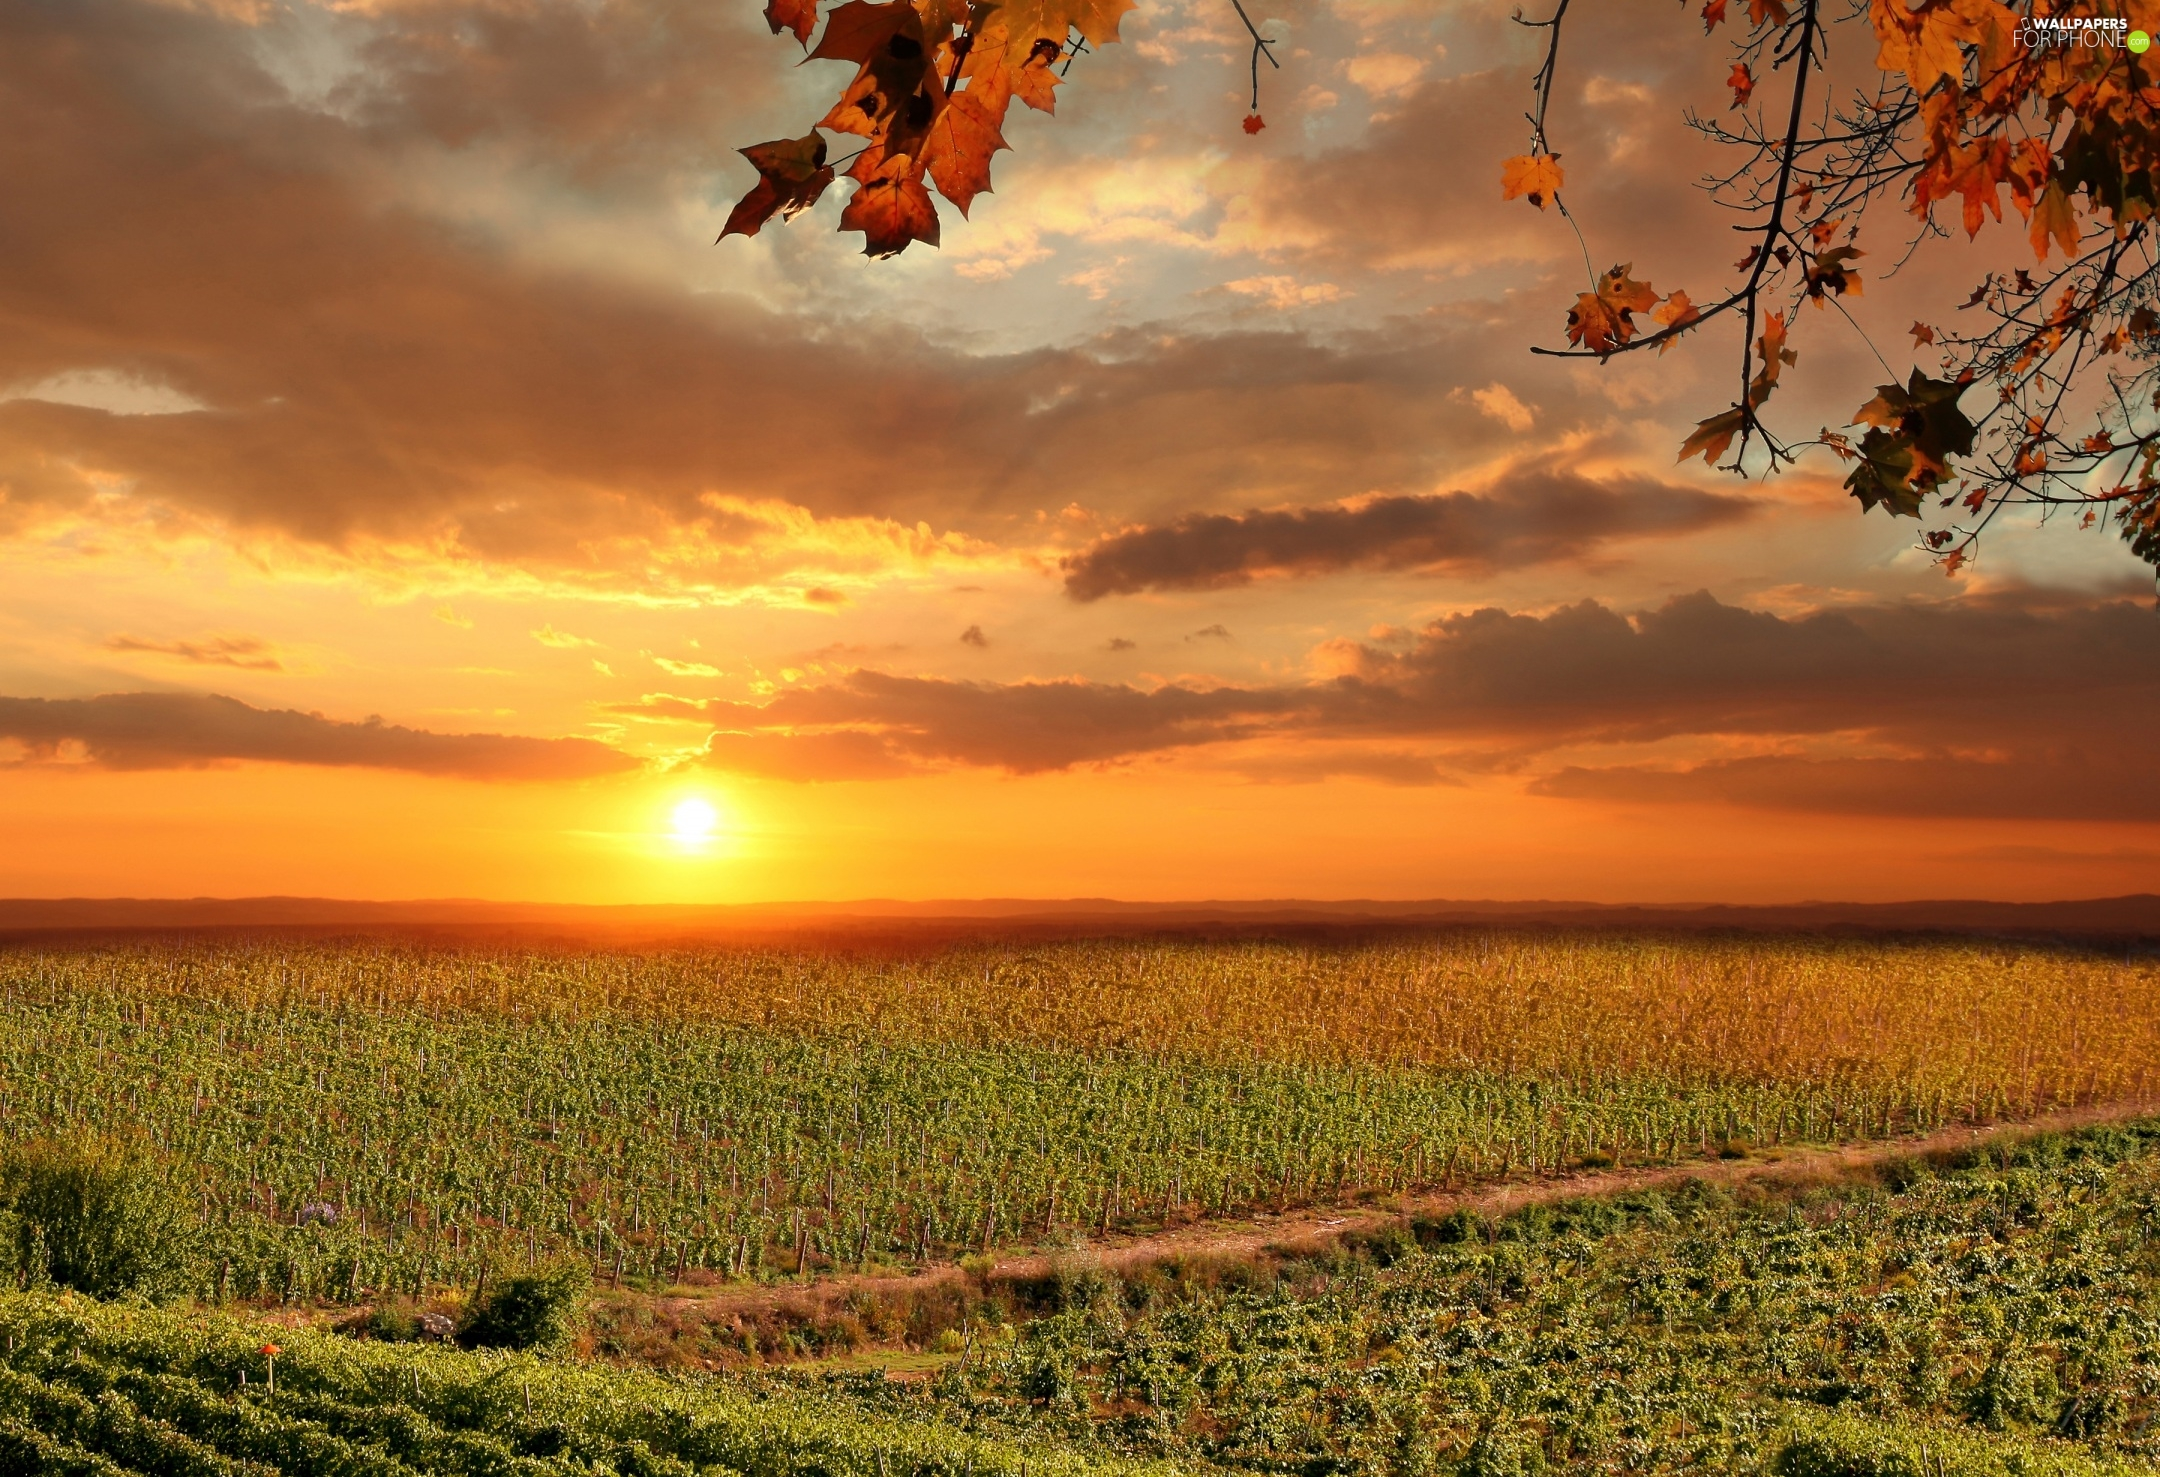 Field, Italy, Sunrise, clouds, vineyards, Tuscany